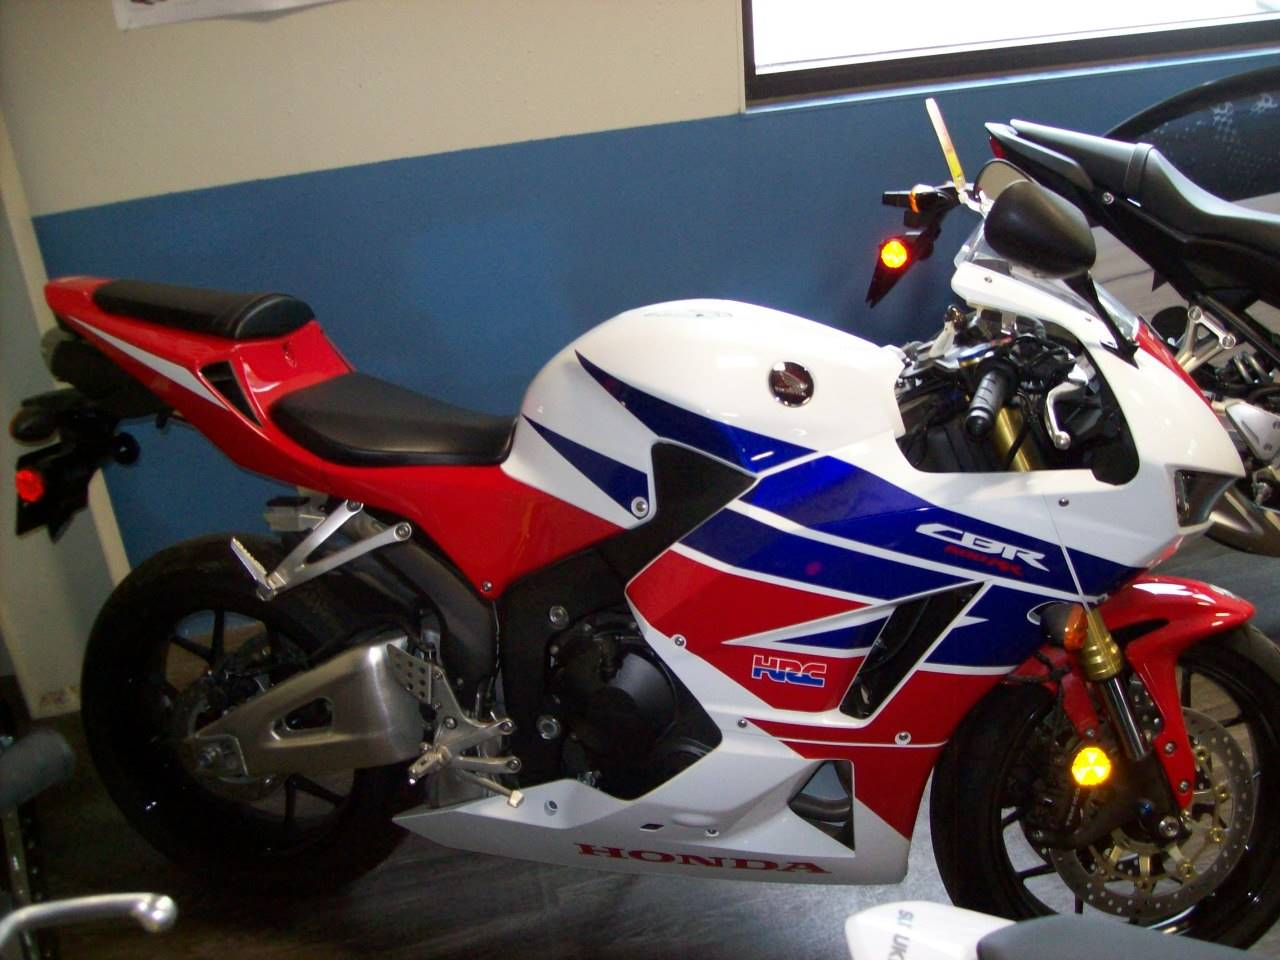 Used 2014 Honda Cbr600rr White Blue Red Motorcycles In